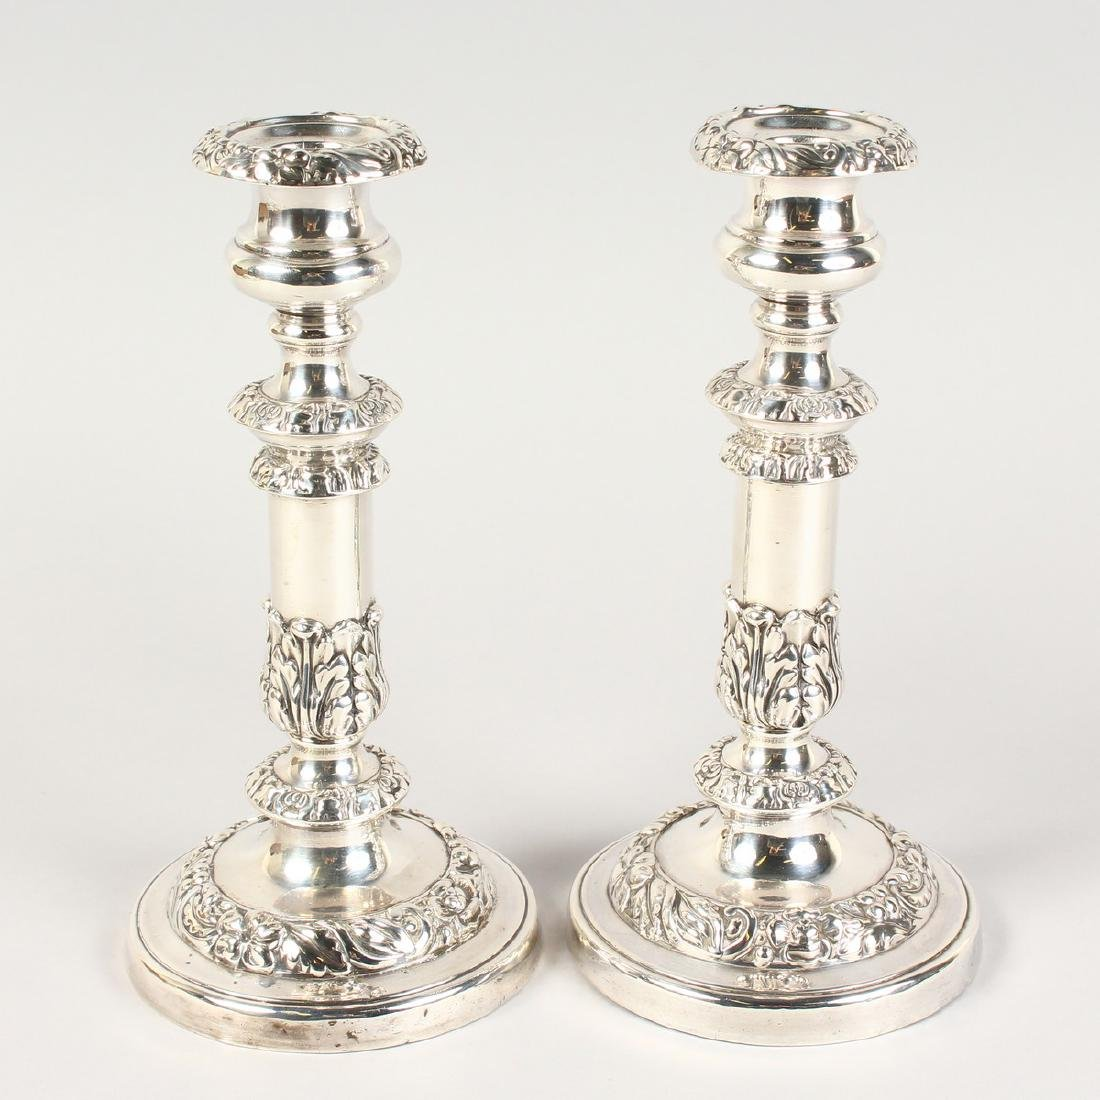 A PAIR OF GEORGE III CIRCULAR CANDLESTICKS, with wooden